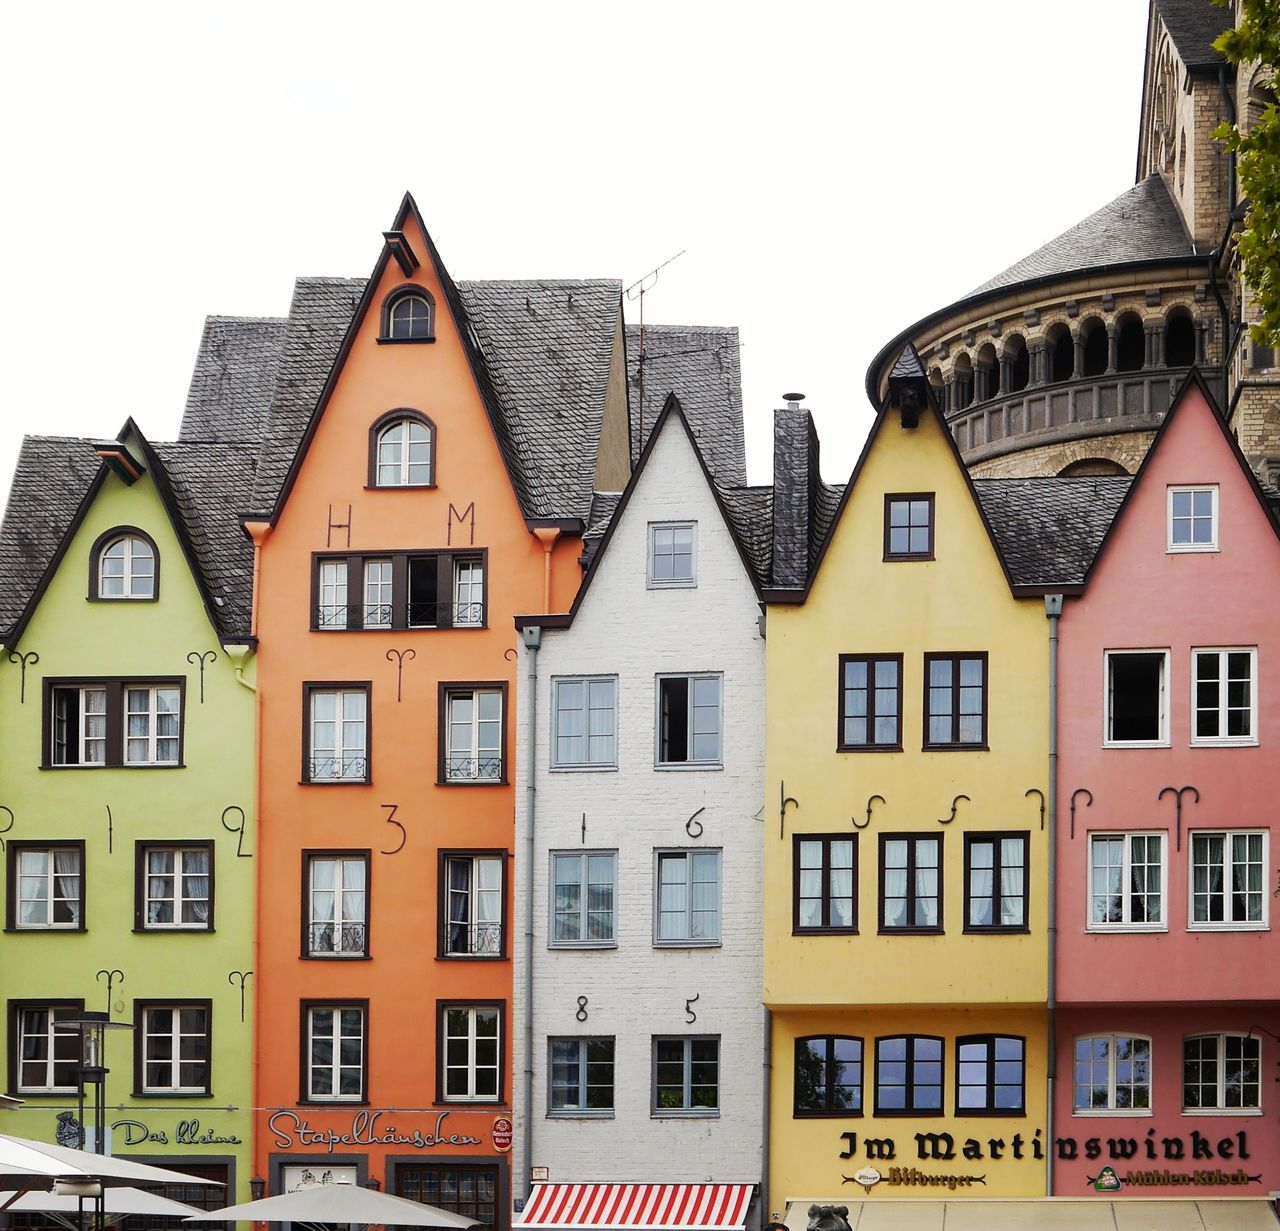 Those houses... House Building Exterior Residential Building Architecture Window Built Structure Façade City Housing Development Outdoors Home Ownership Detached House No People Roof Day Travel Destinations Cityscape Apartment Urban Skyline Sky Köln Architecture Neighborhood Map The Architect - 2017 EyeEm Awards